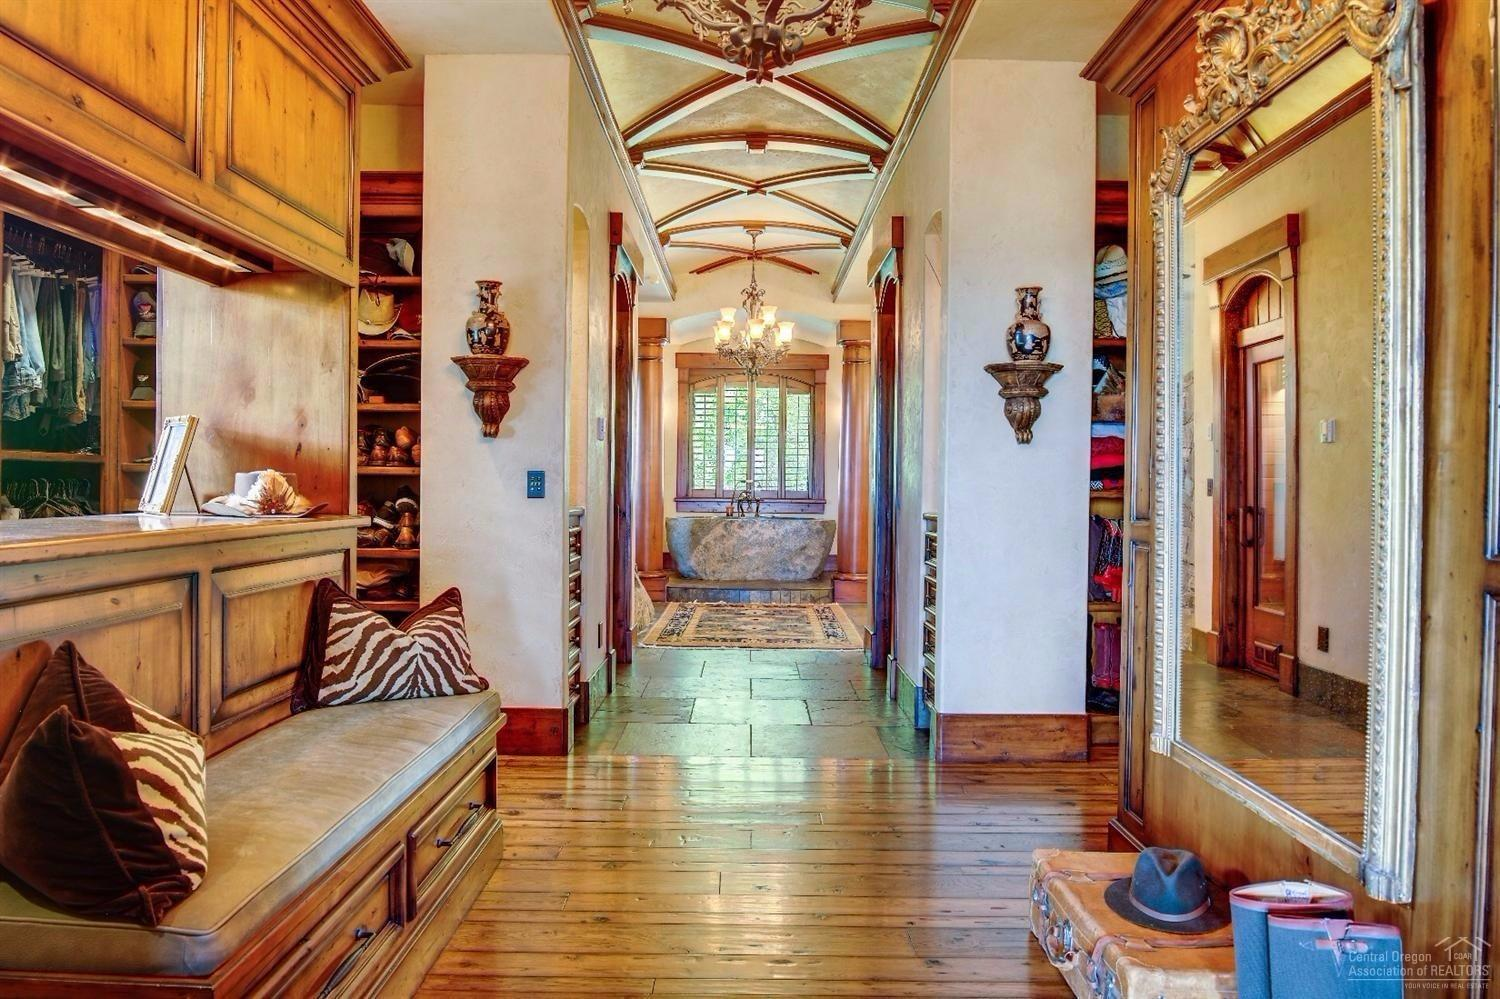 A beautiful barrel ceiling with artistic detail an